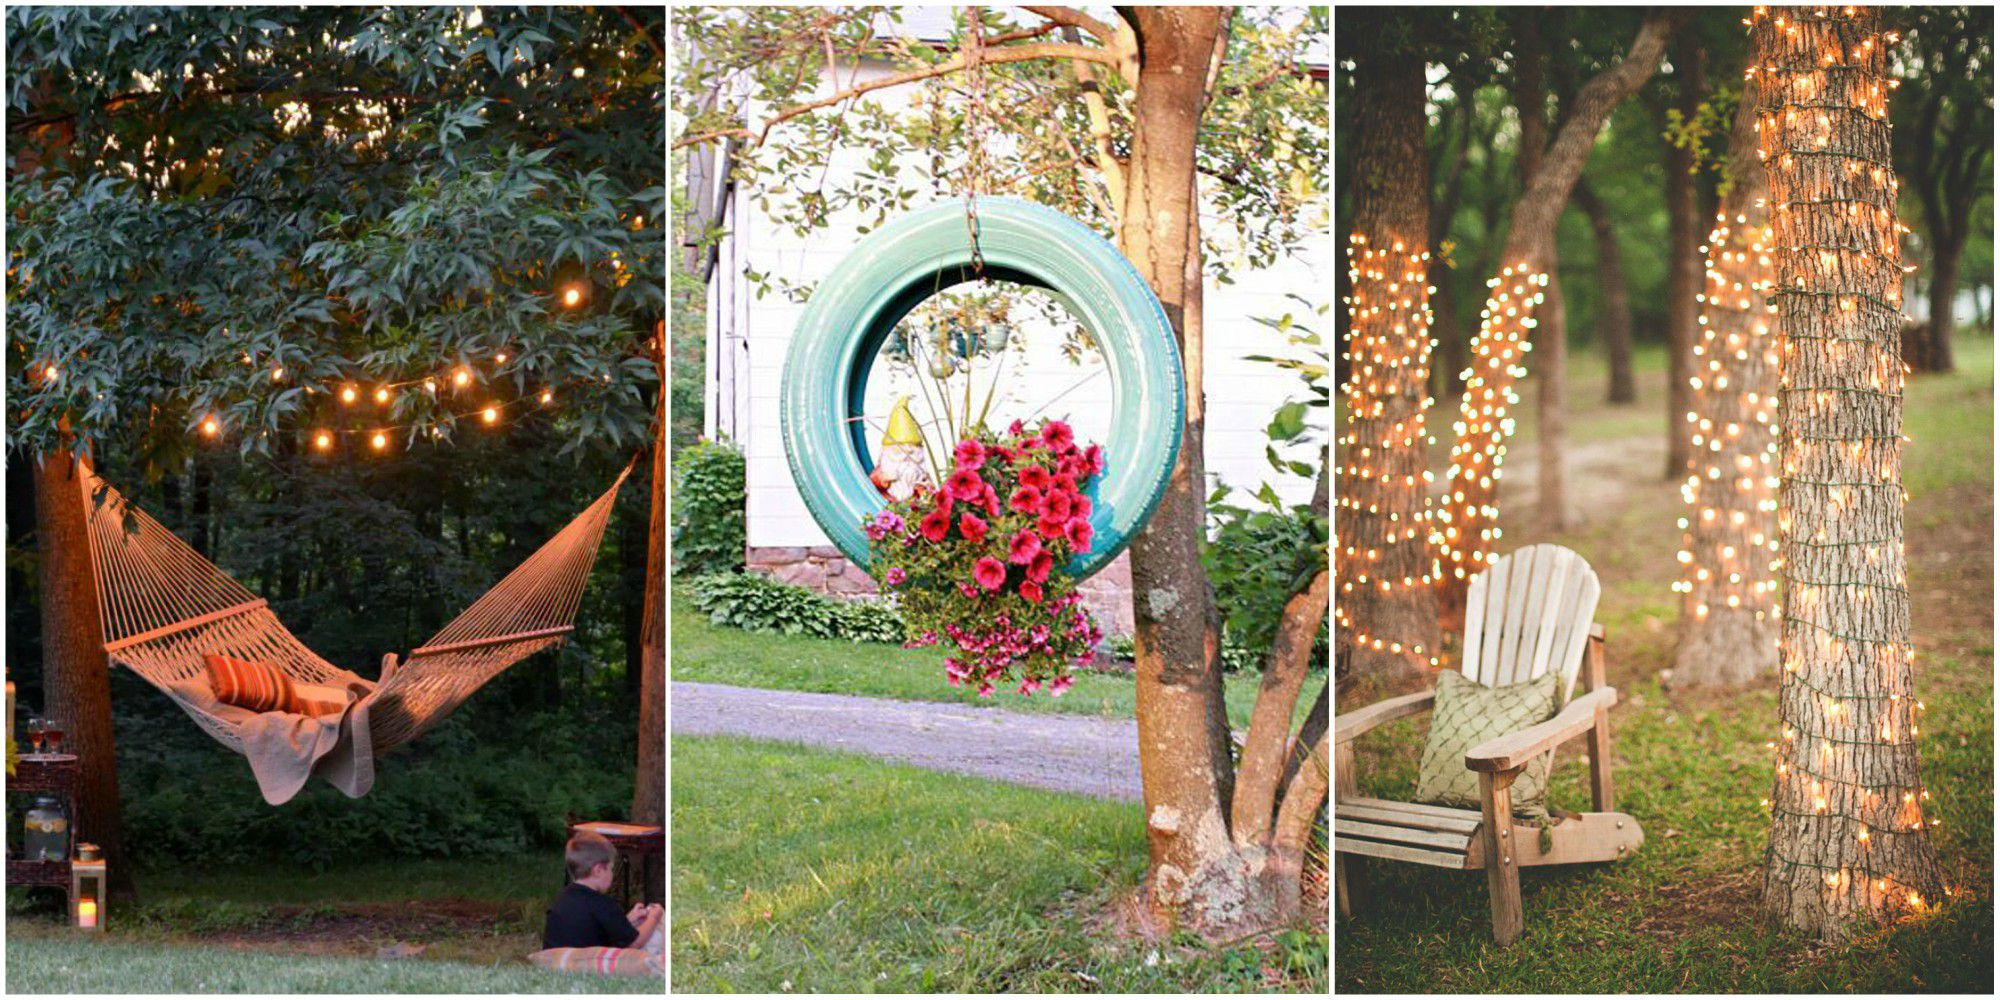 garden decorations ideas  54